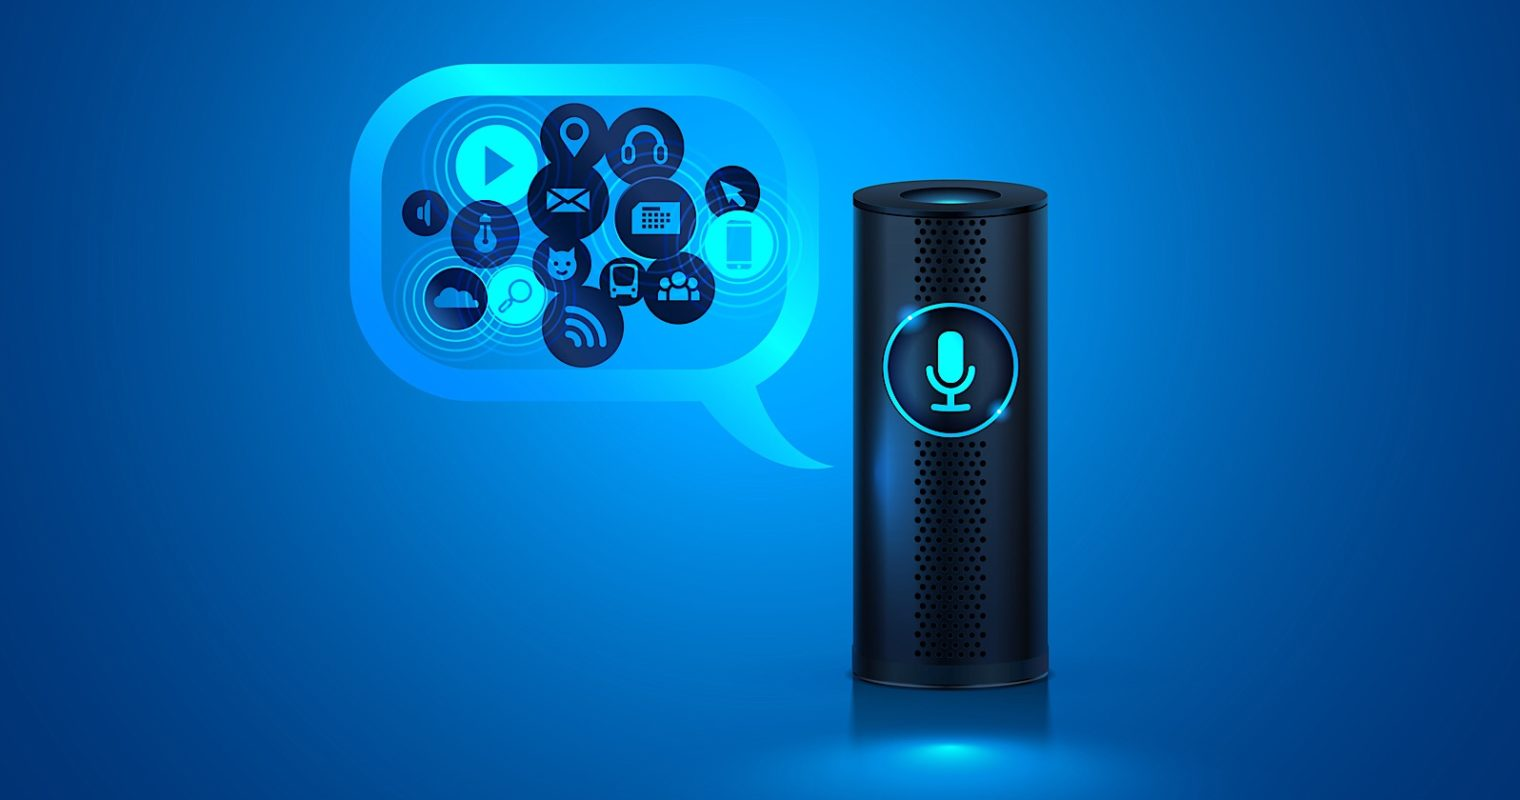 33% of People Are Now Using Voice Assistants Regularly